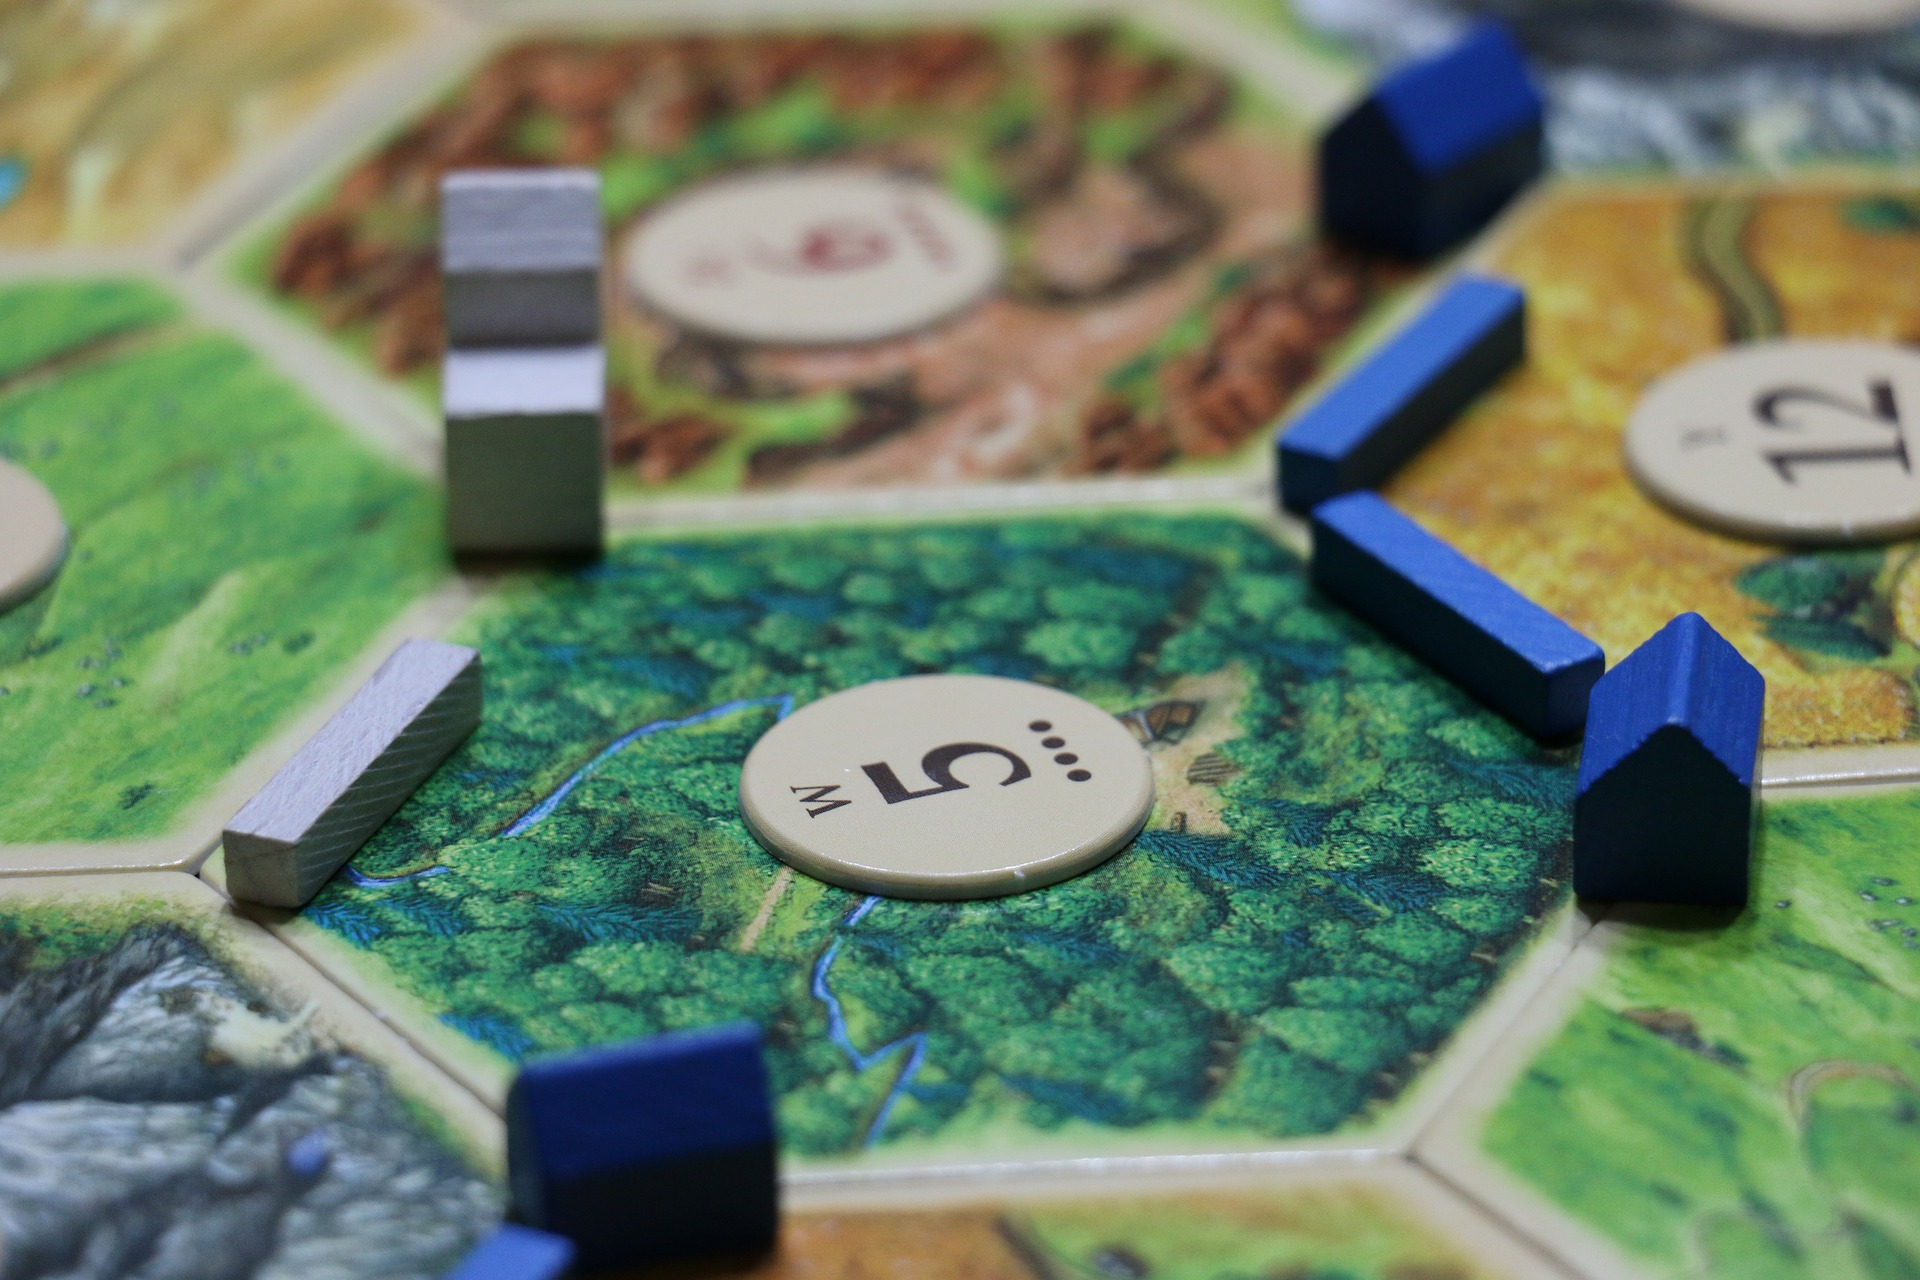 Starting Monday, September 10 at 8 p.m., The Fainting Goat is inviting Catan enthusiasts to come play the game at the bar and enjoy happy hour prices all night long.{ } (File photo)